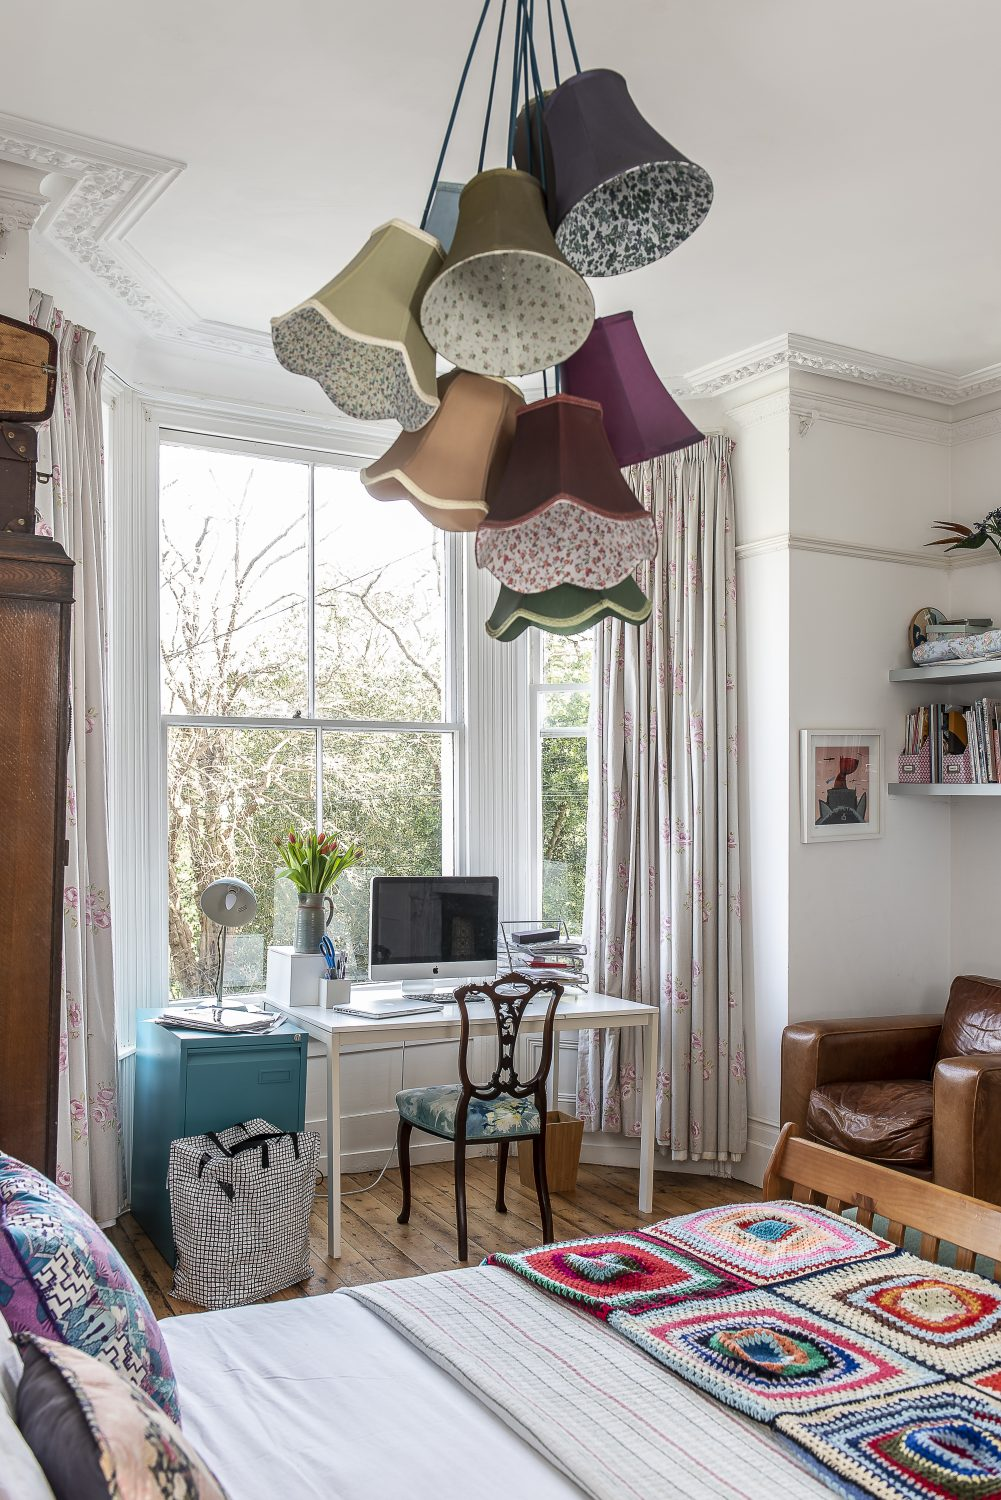 A cluster of mismatched floral lampshades that Sadie found on notonthehighstreet.com hangs from the soaring ceiling in this peaceful bedroom